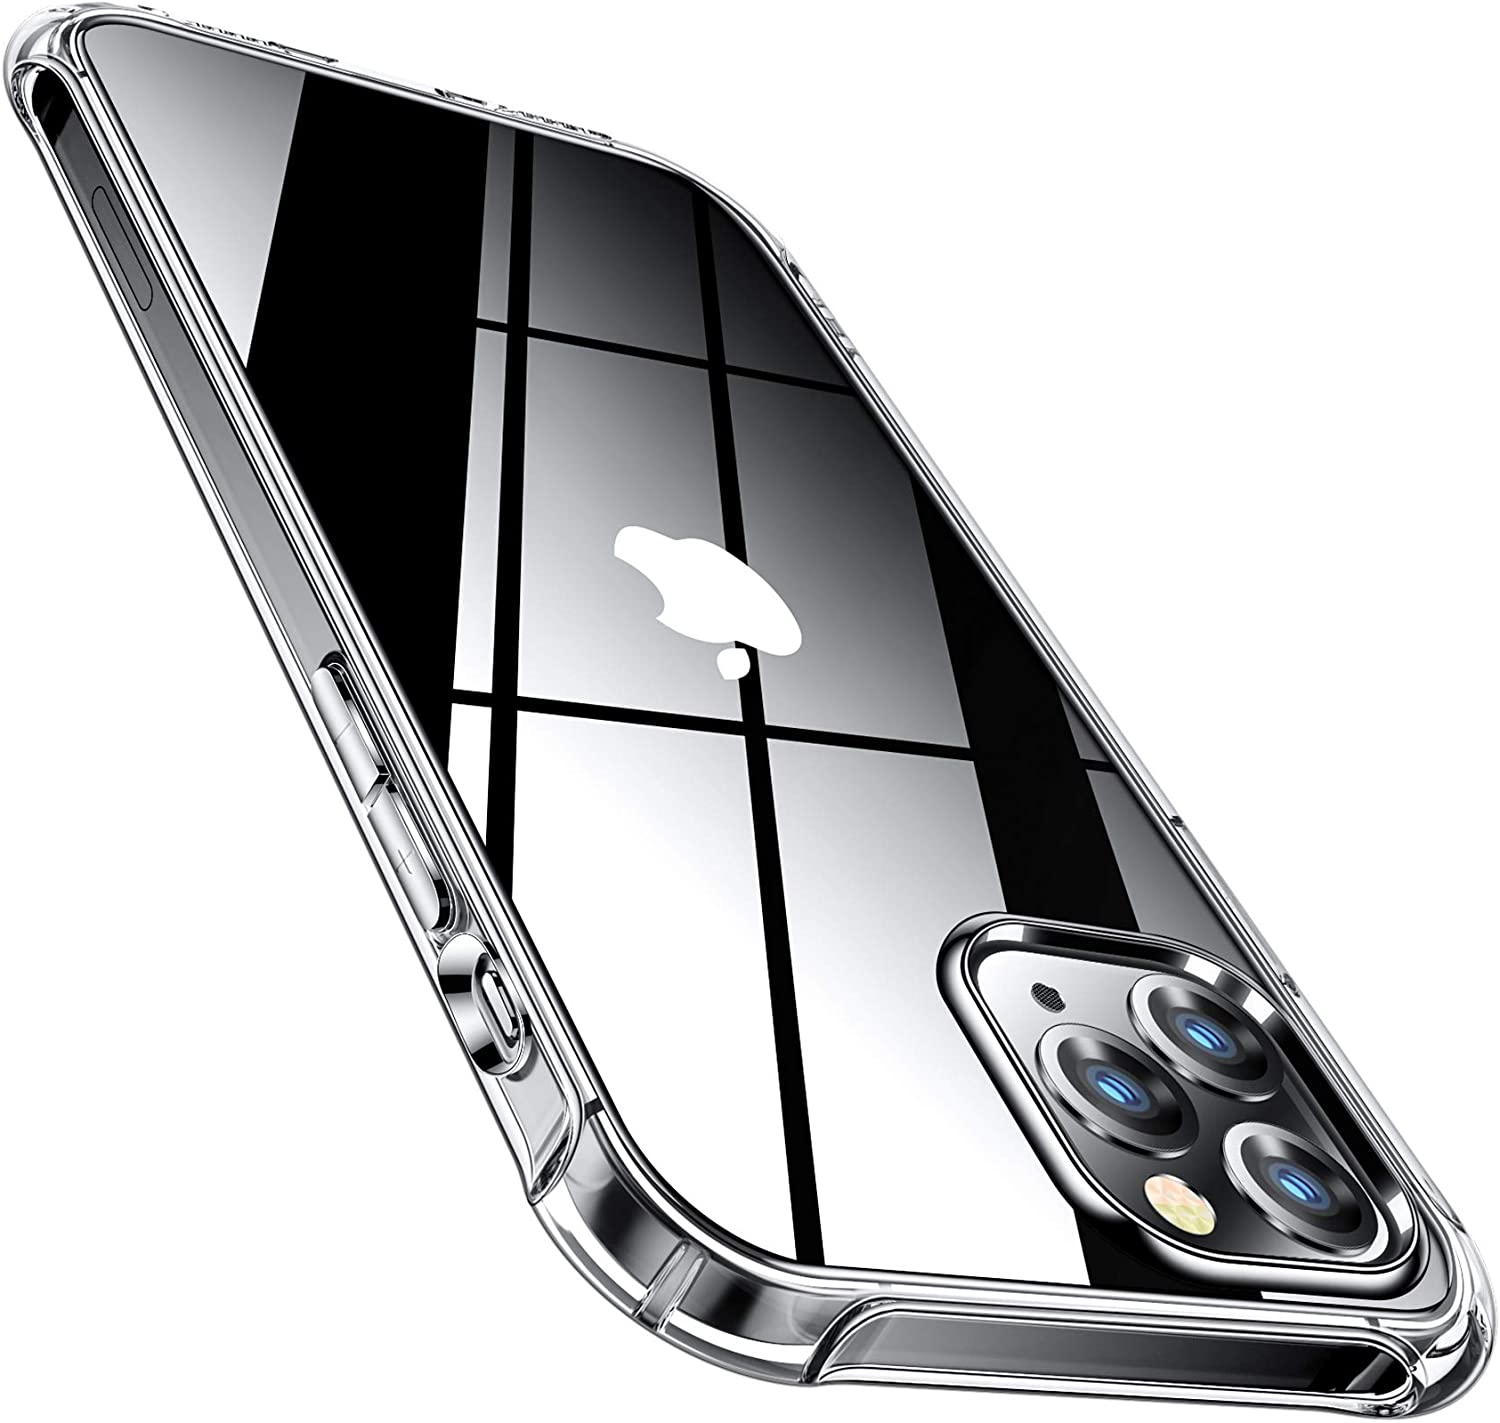 CANSHN Compatible with iPhone 12 Pro Max 6.7'' 2020, Clear Protective [Military Grade Drop Test] [Slim Thin] Case with 4 Reinforced Soft TPU Bumpers - Clear